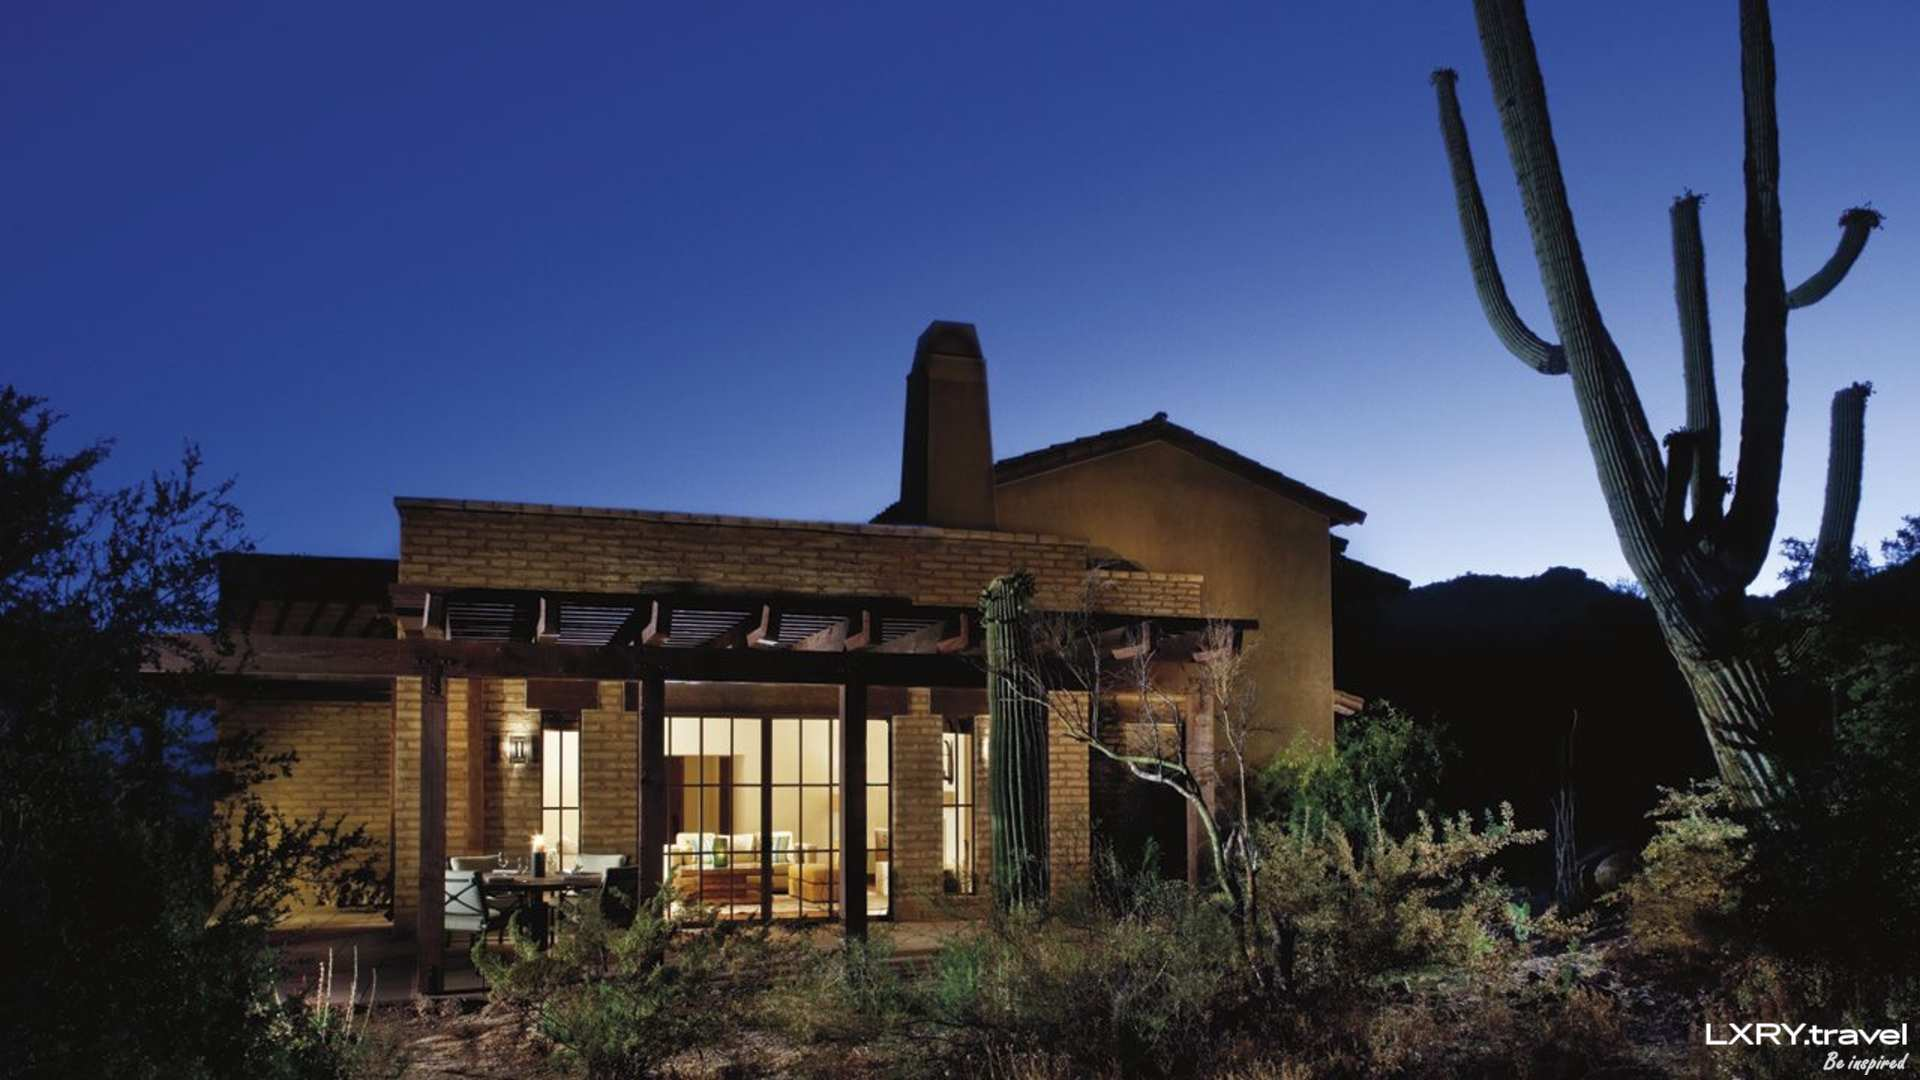 The Ritz-Carlton, Dove Mountain 56/56